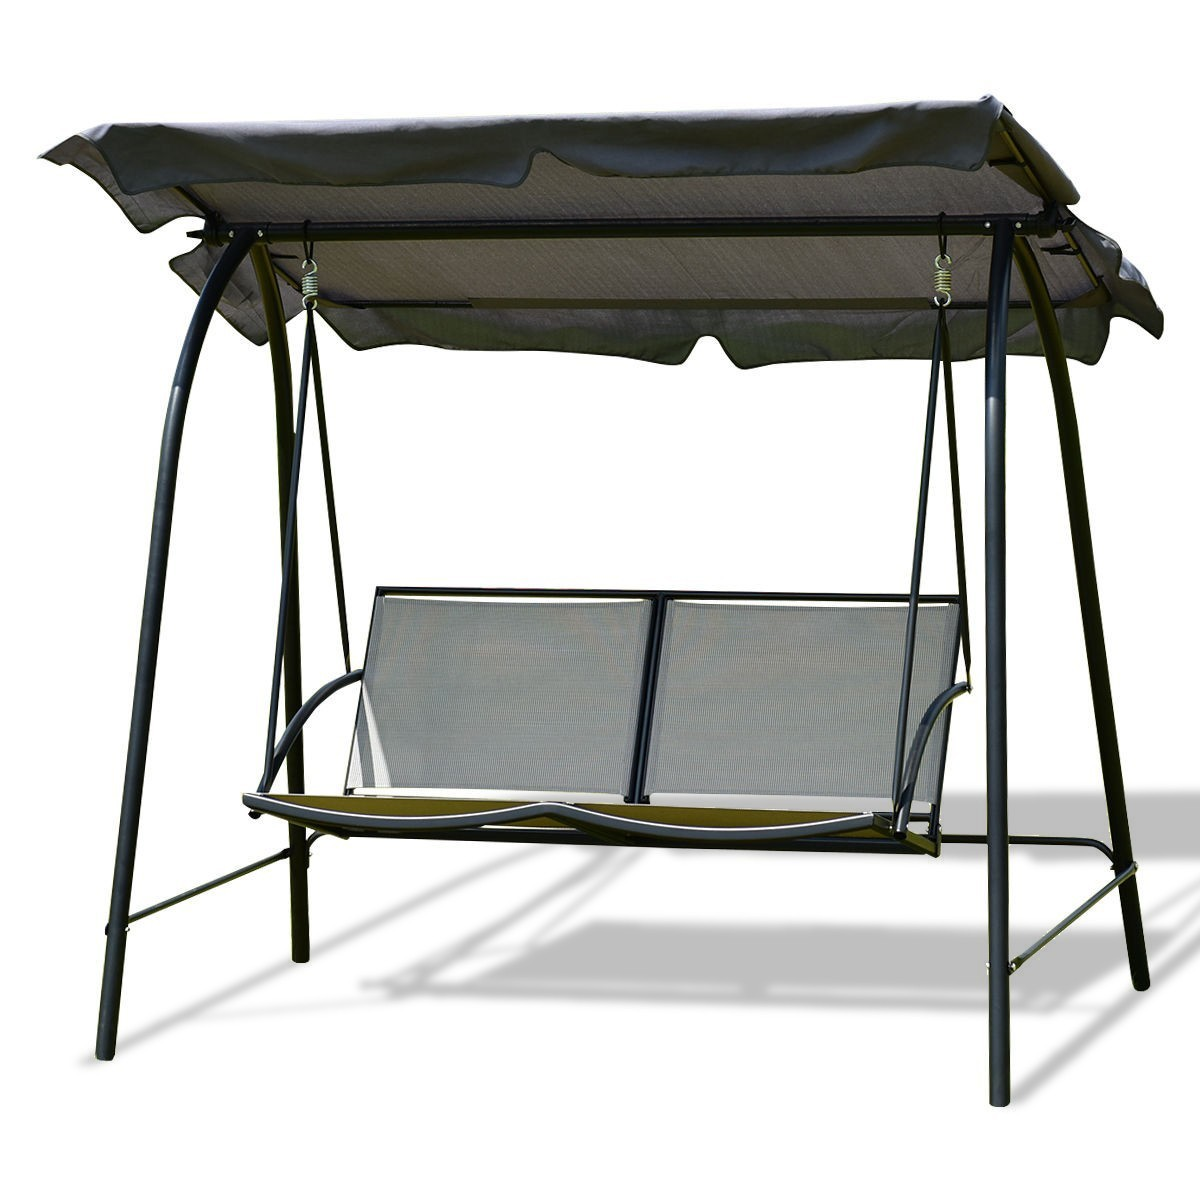 Patio Swing Chair with Canopy - Gray